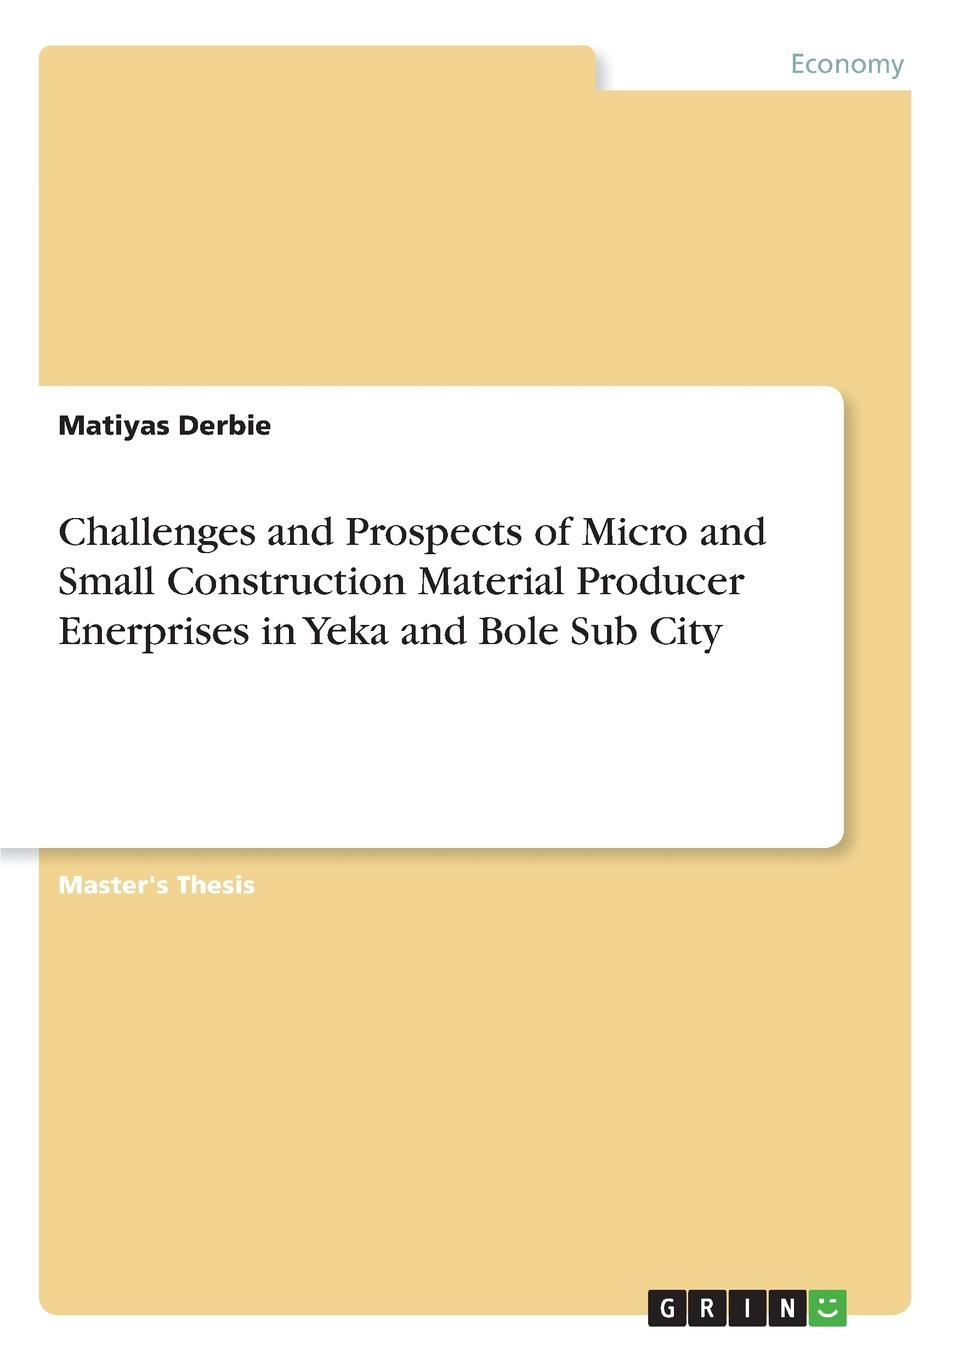 Matiyas Derbie Challenges and Prospects of Micro and Small Construction Material Producer Enerprises in Yeka and Bole Sub City malcolm kemp extreme events robust portfolio construction in the presence of fat tails isbn 9780470976791